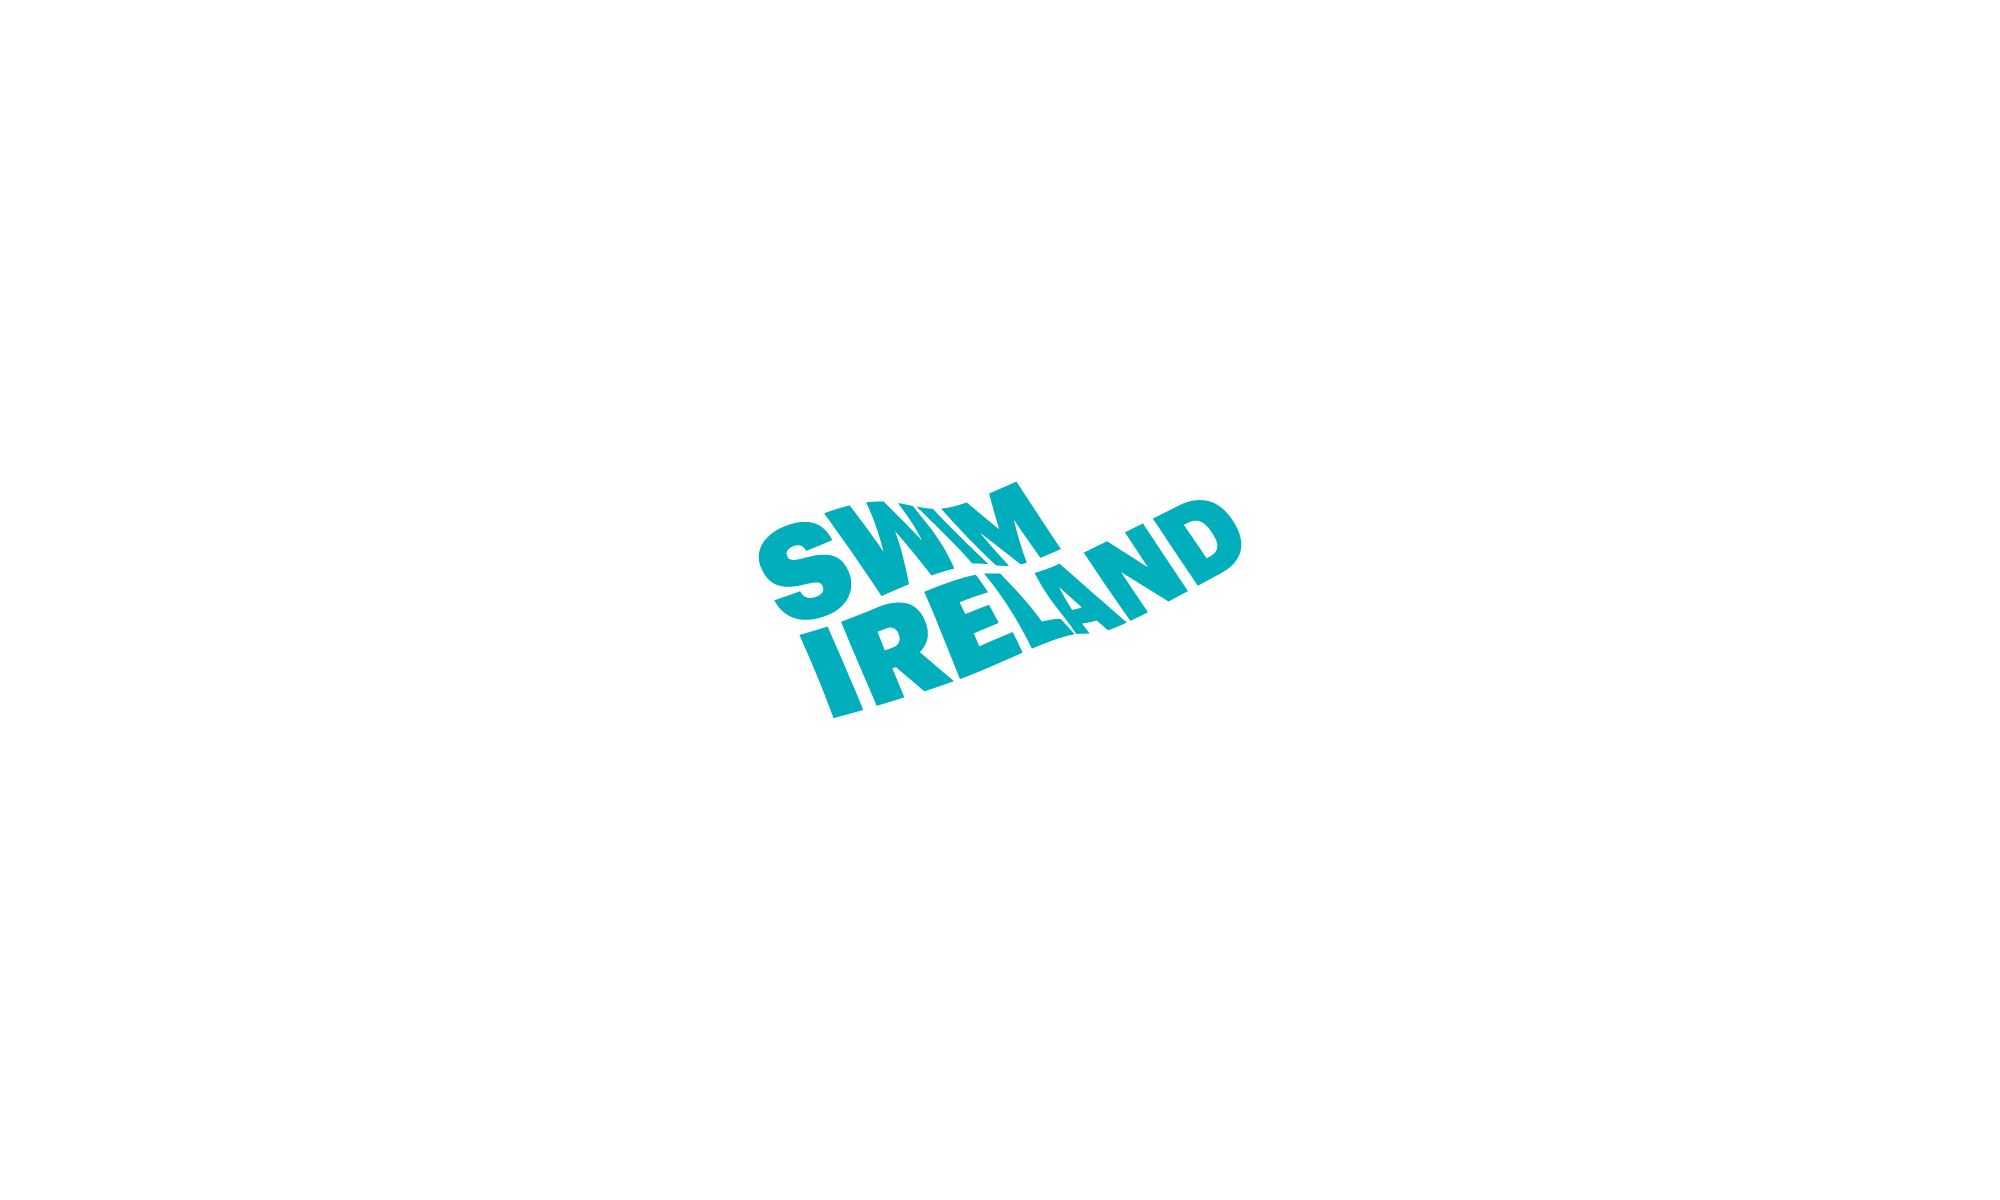 Swim drawing freestyle swimming. Irish masters faster higher